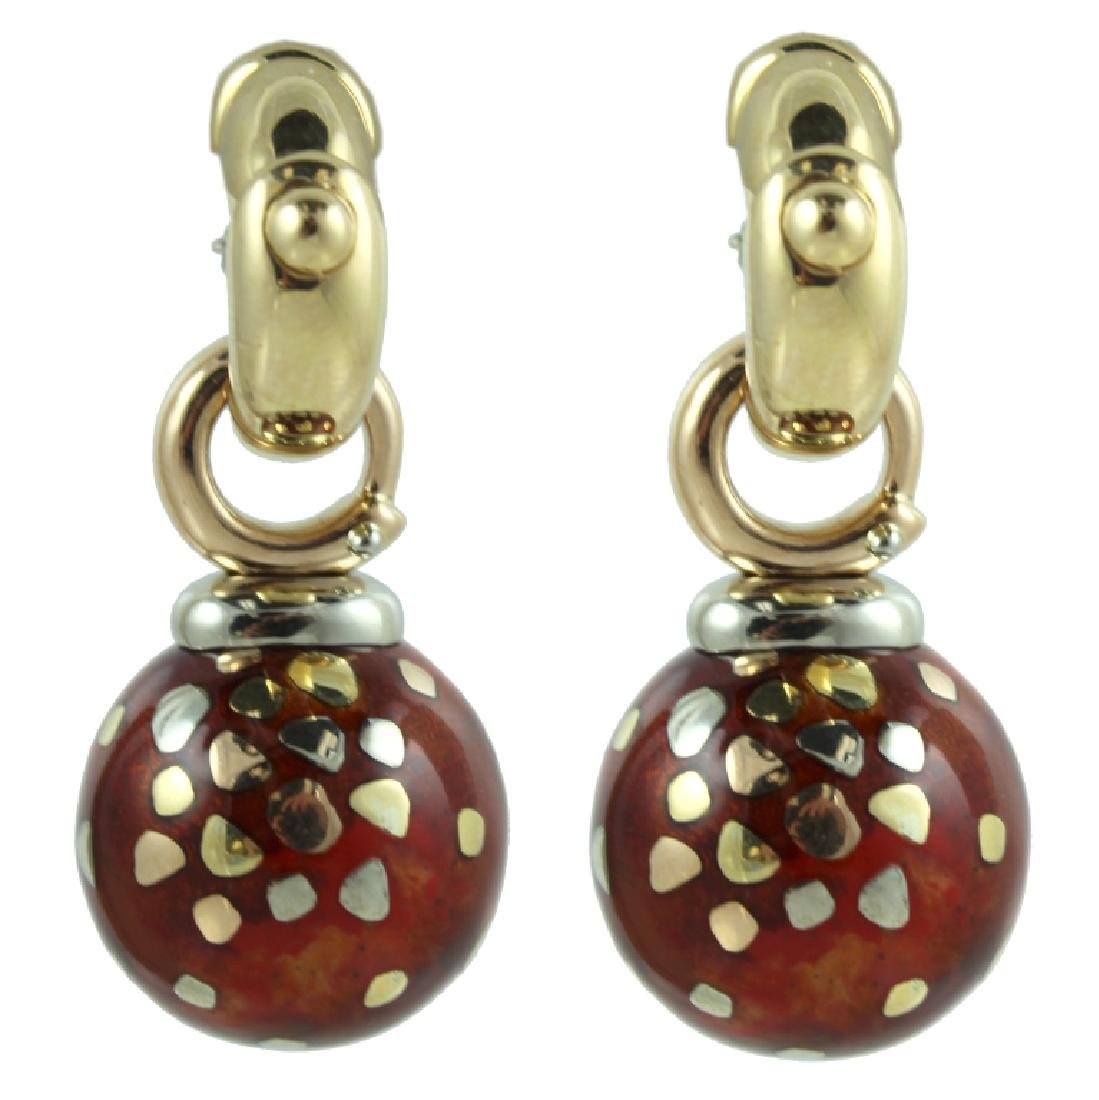 Earrings,18K Yellow Gold La Nouvelle Bague Enamel